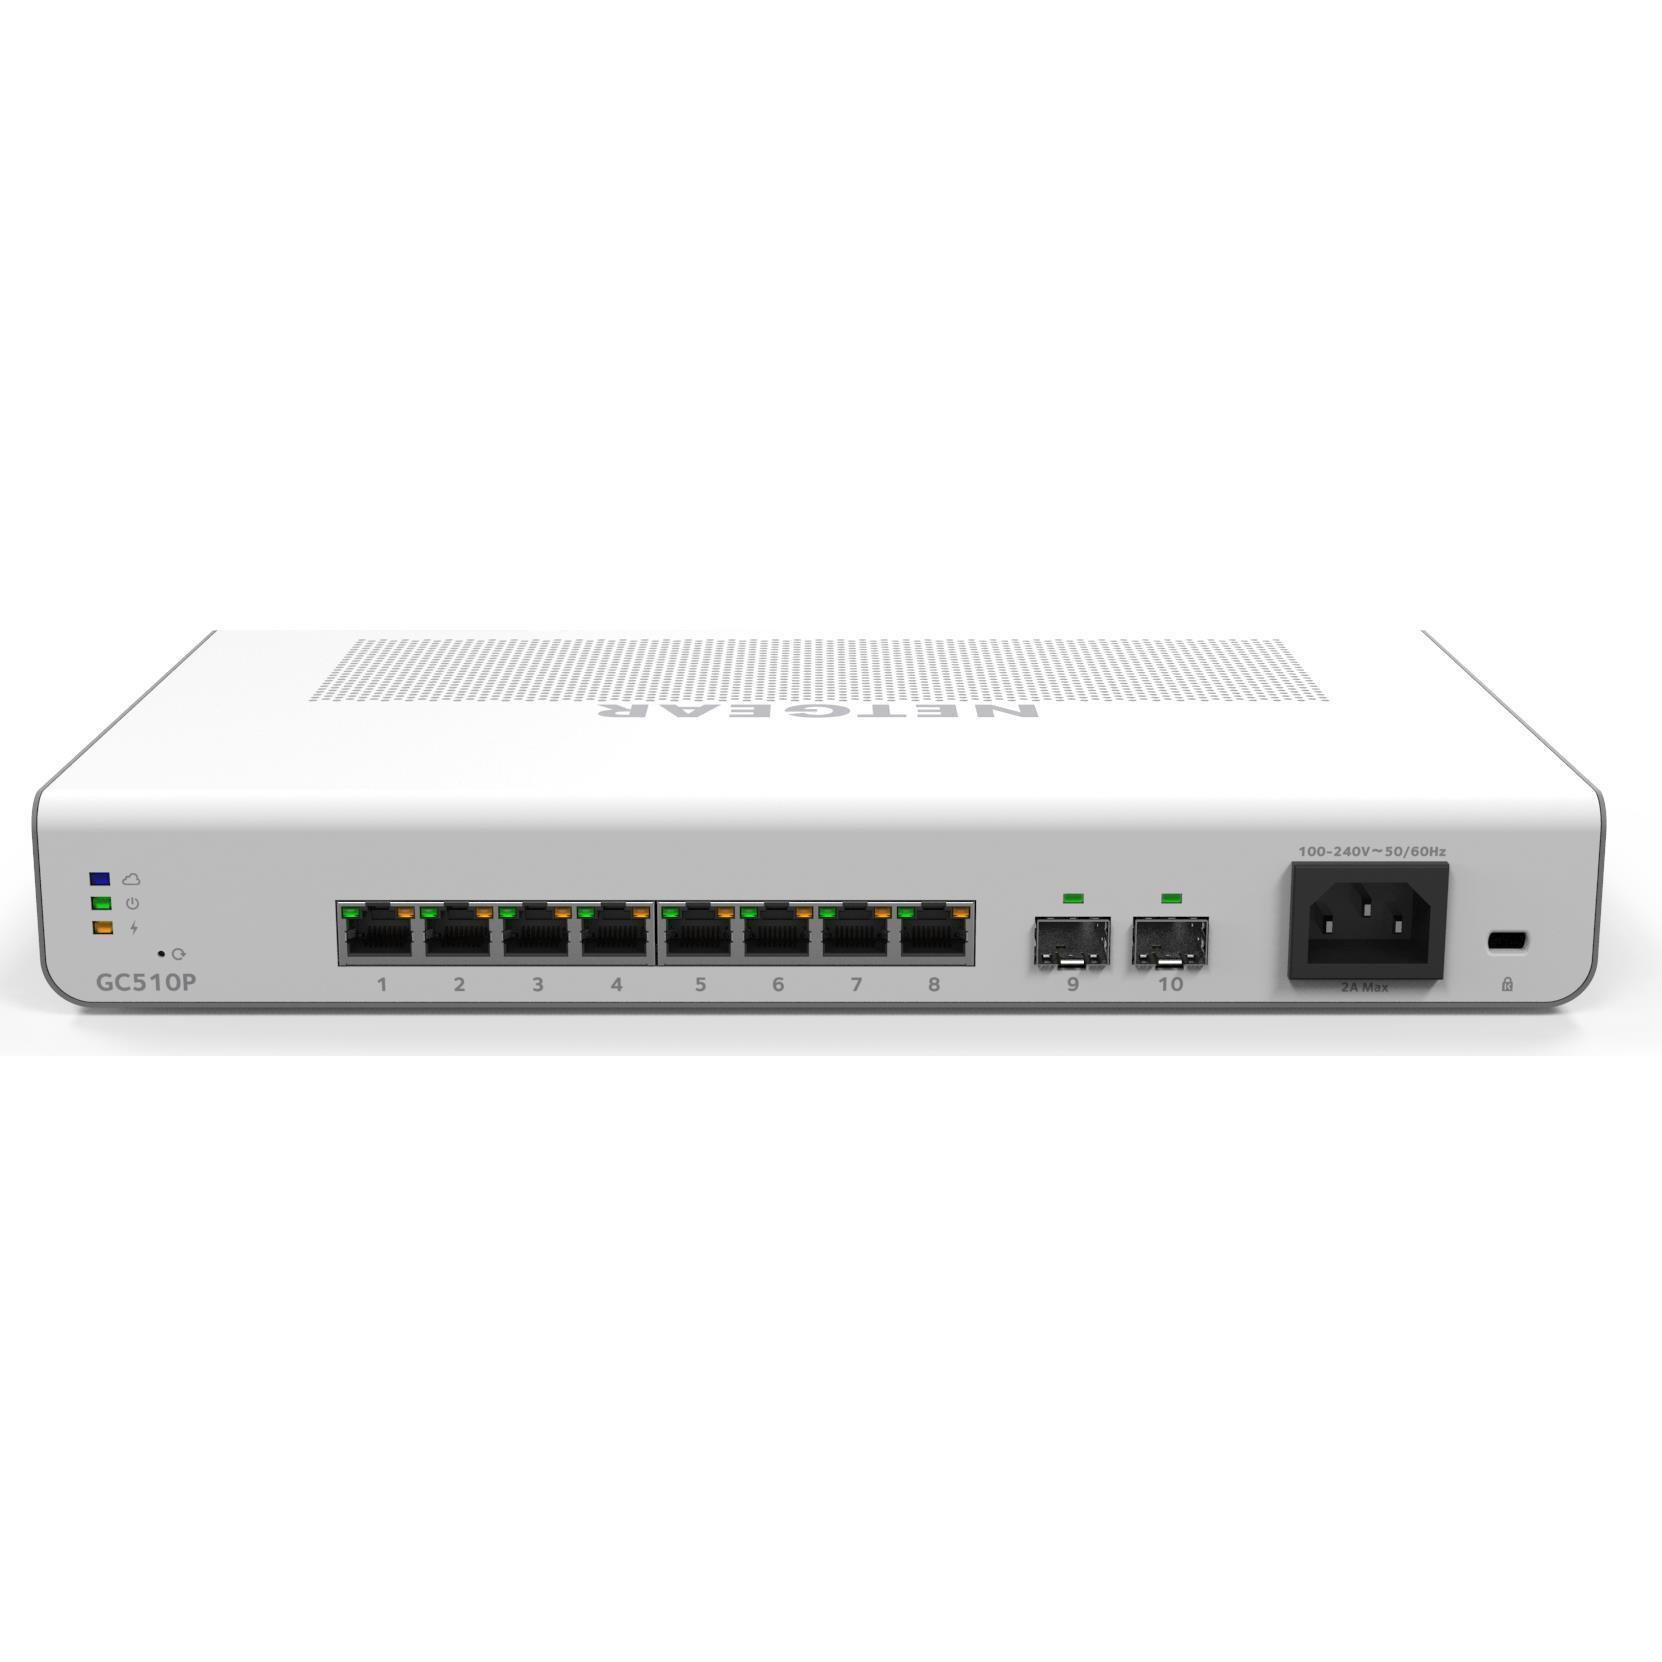 Netgear GC510 Insight Managed 8-Port Switch (PoE+)